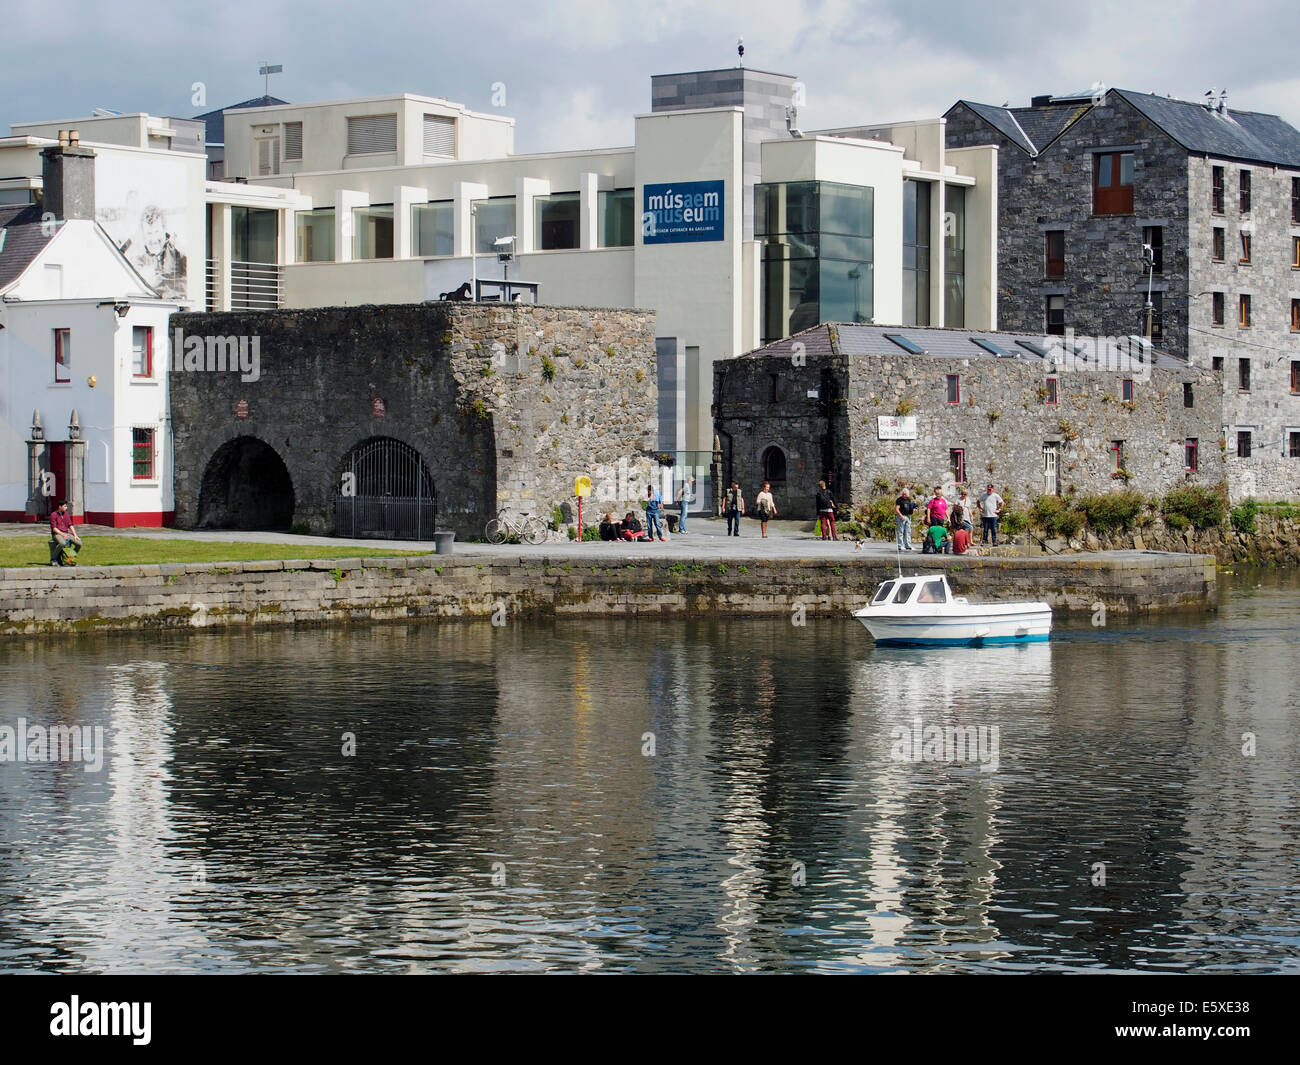 Pleasure boats in the Claddagh Basin, the old Galway town harbour with the Spanish Arches and modern museum building. - Stock Image